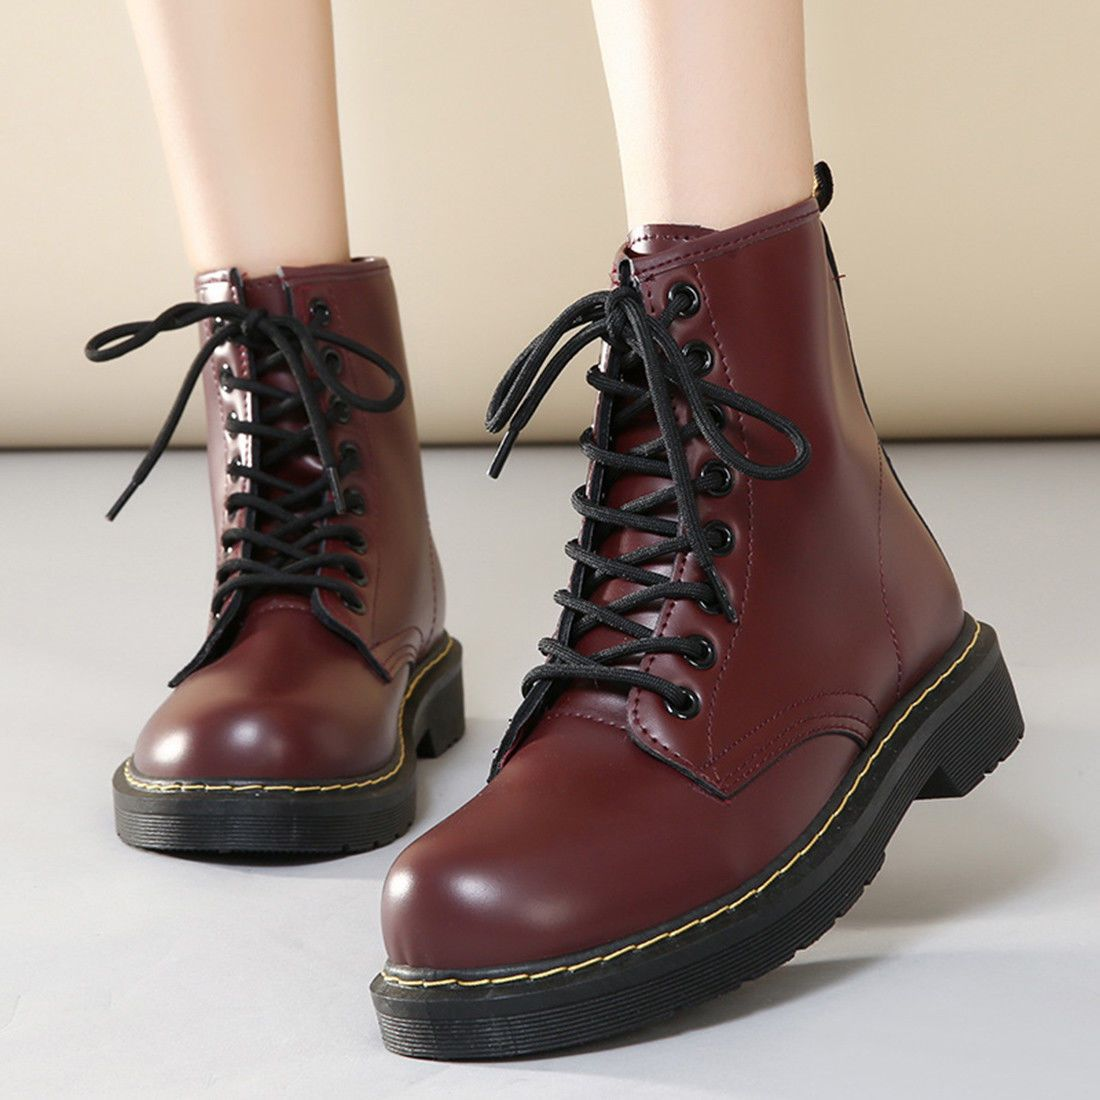 Women Fashion Round Toe Lace Up Ankle Martin Flat Boots Shoes